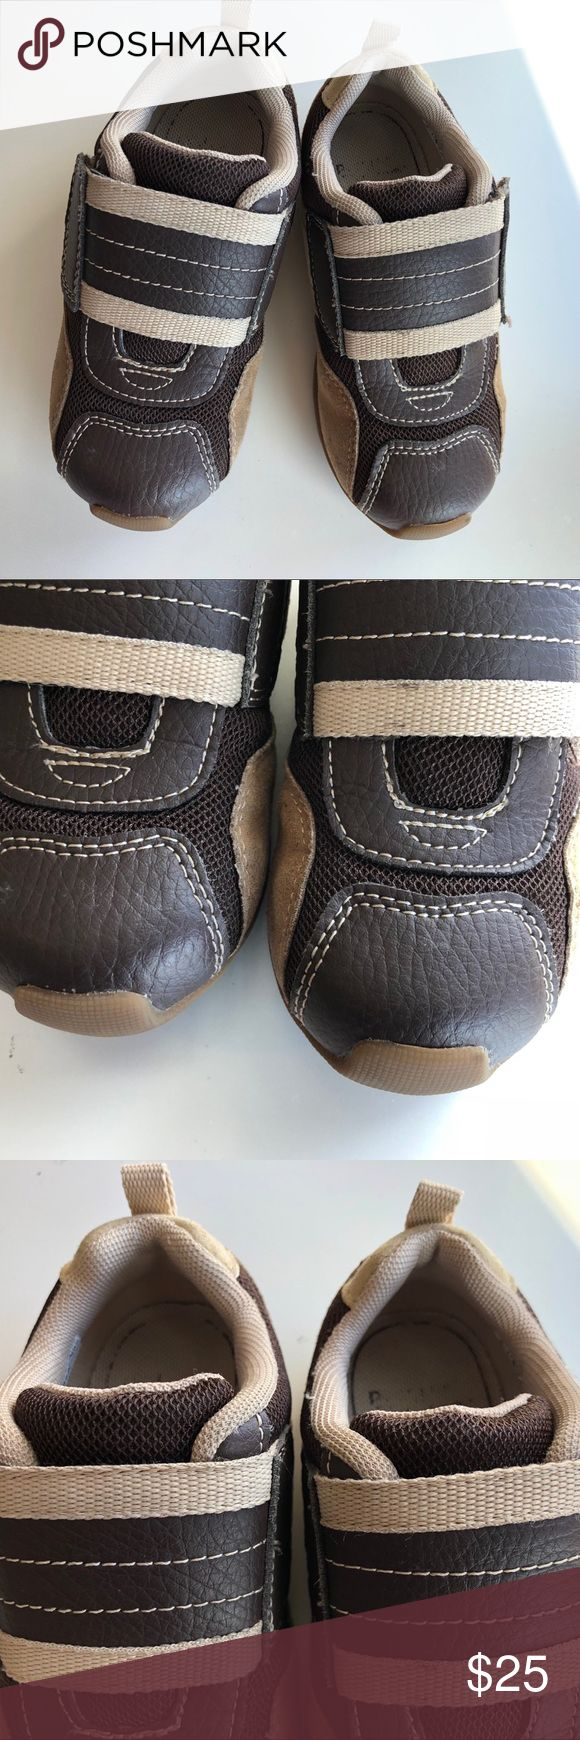 Boys Pediped Shoes Boys Pediped brown sneakers with Velcro closure size 9.5.  Hardly worn!  Some wear on the inside sole of the logo, other than that in EXCELLENT condition!  From a pet&smoke free home! pediped Shoes